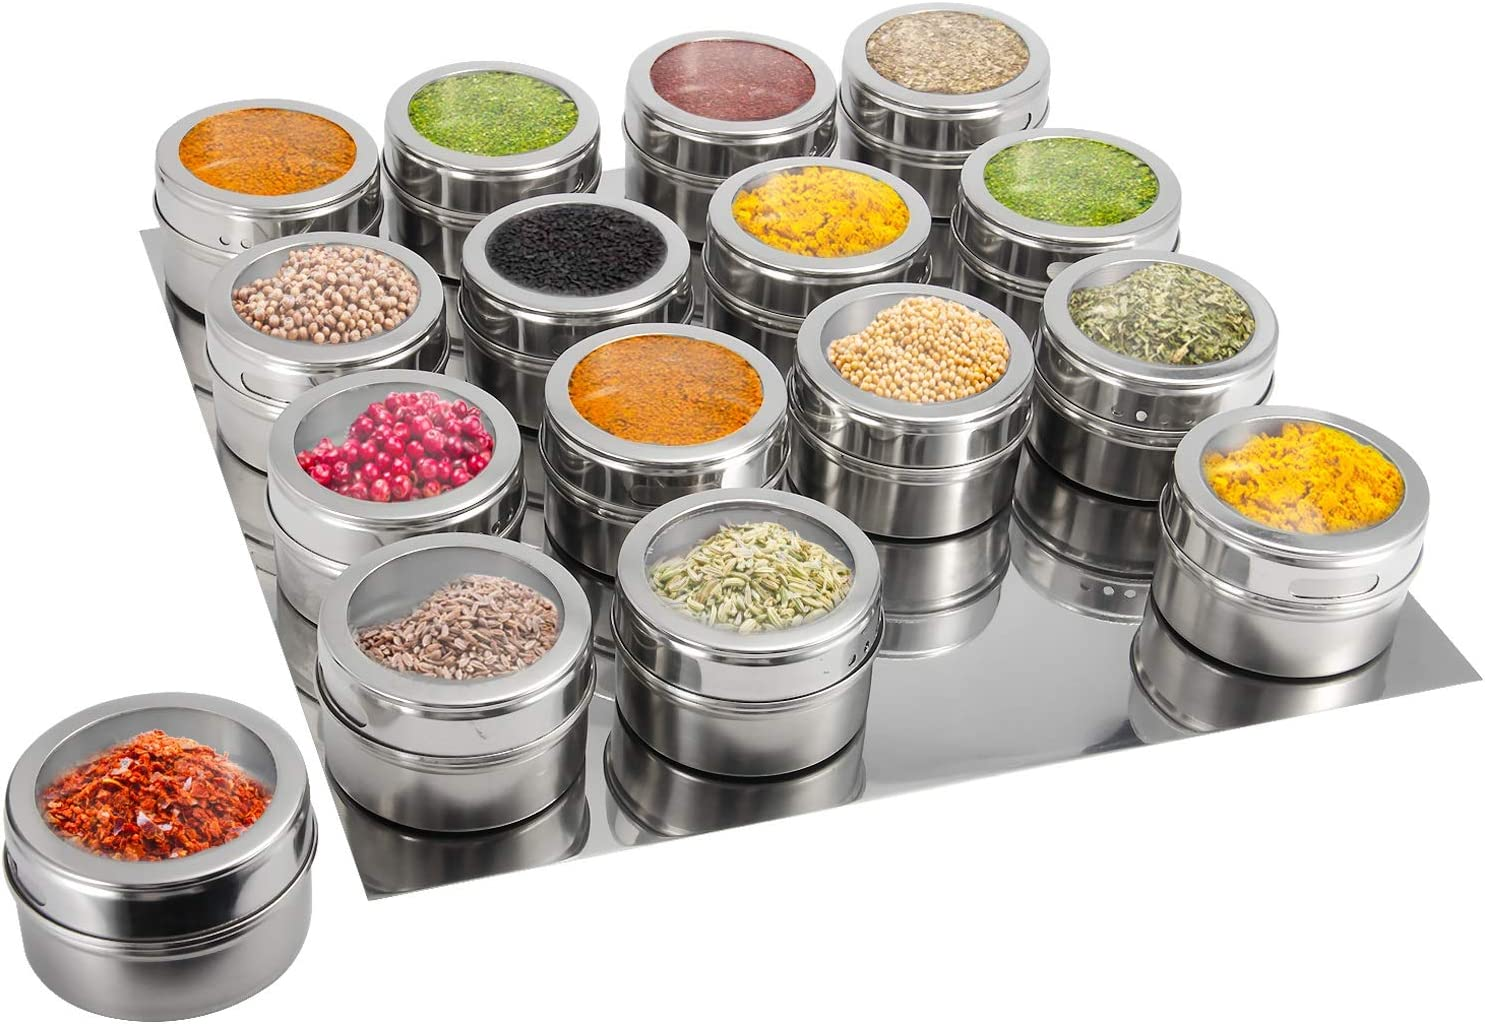 Magnetic Spice Containers Set Of 12 Magnetic Spice Tins Spice Mount Organizer